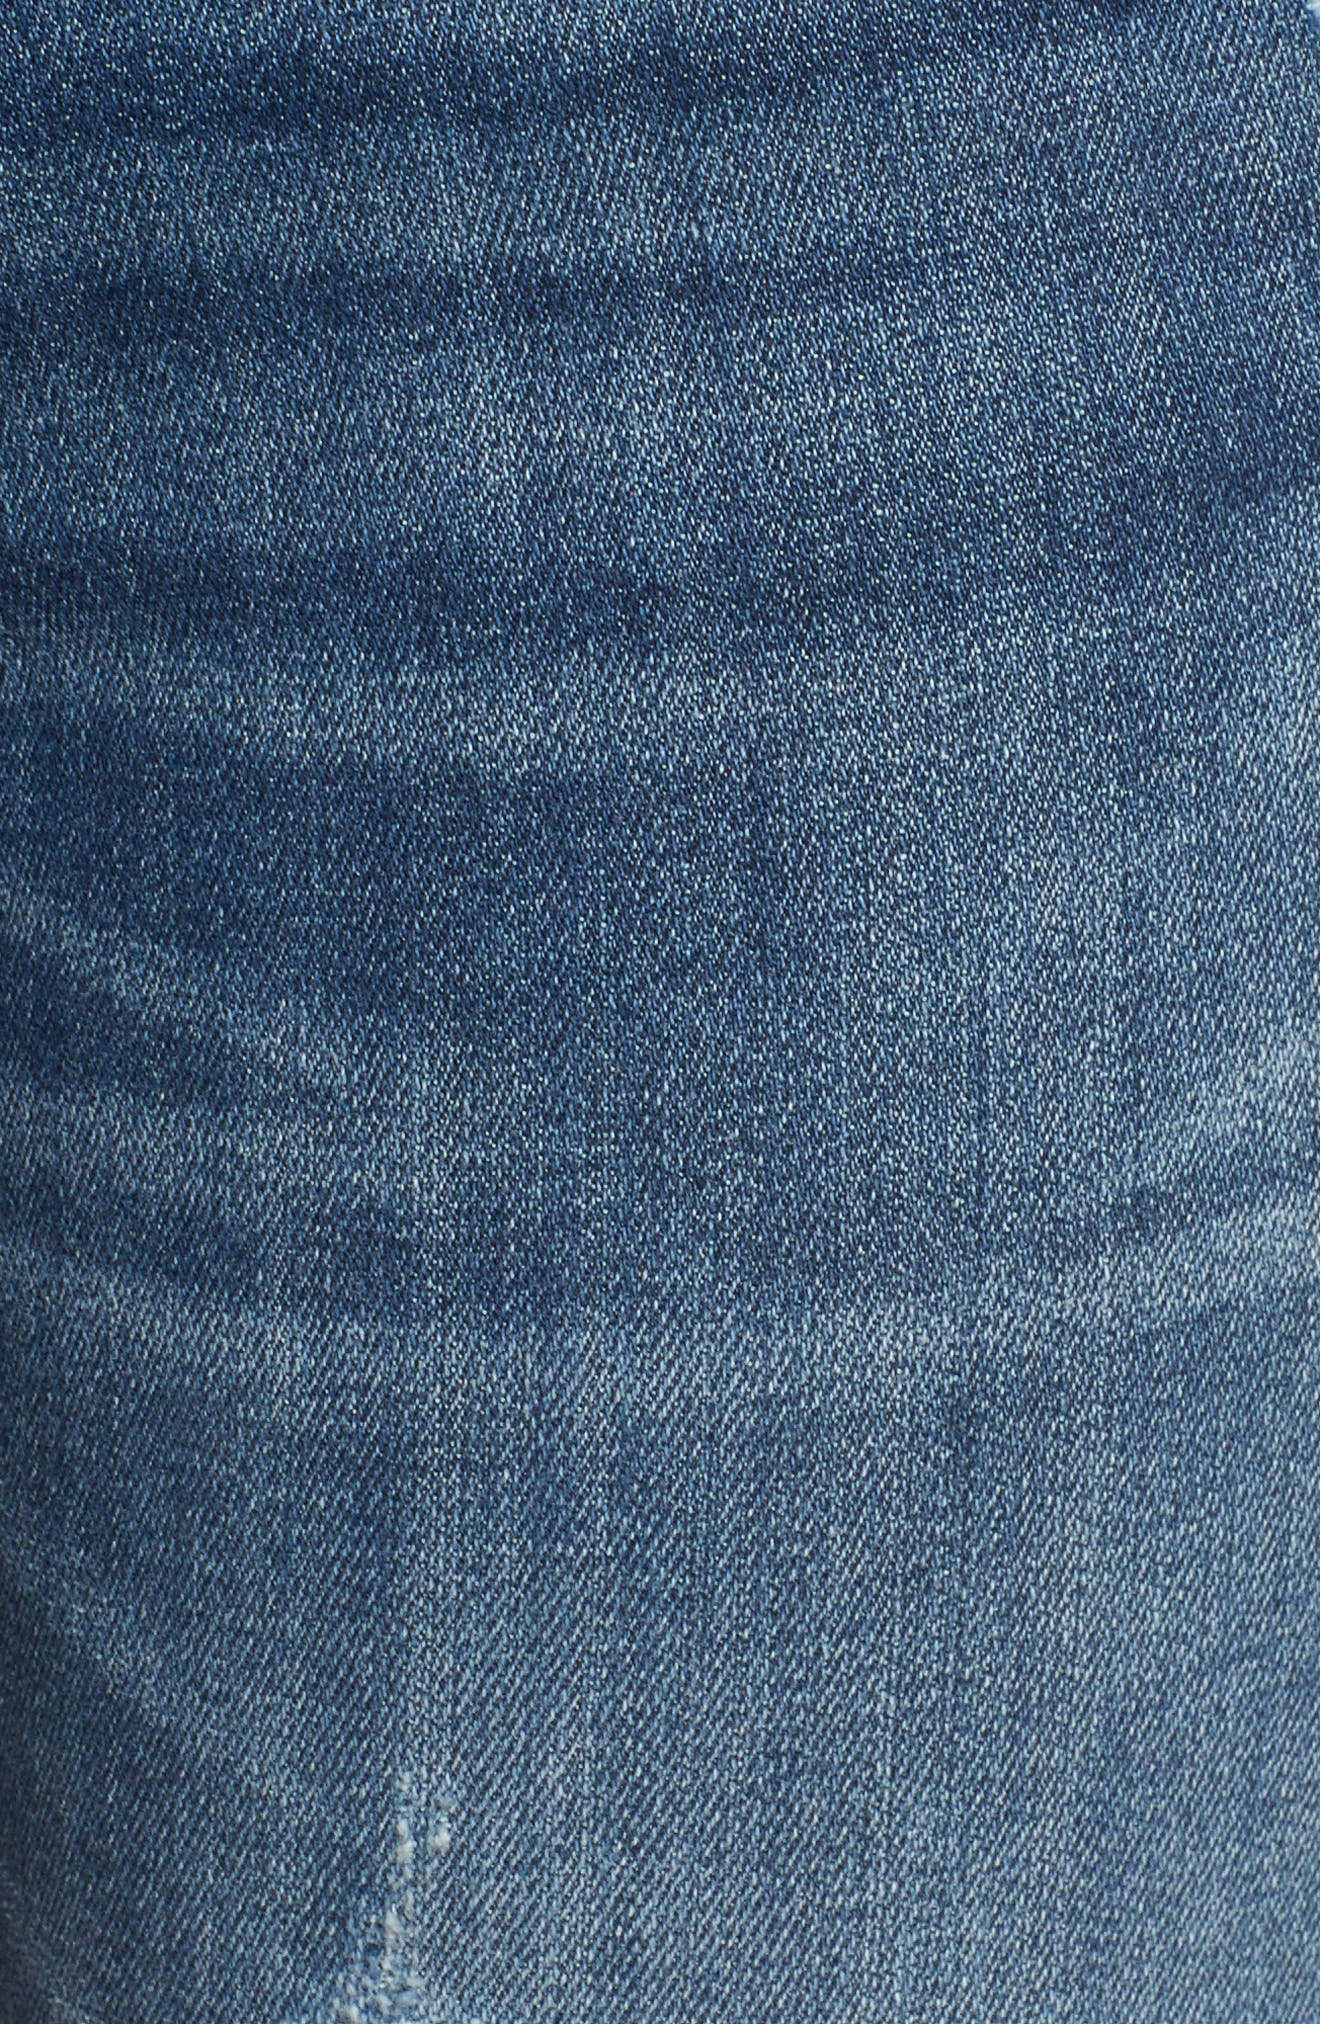 Jagger Ripped Skinny Jeans,                             Alternate thumbnail 6, color,                             MED WASH